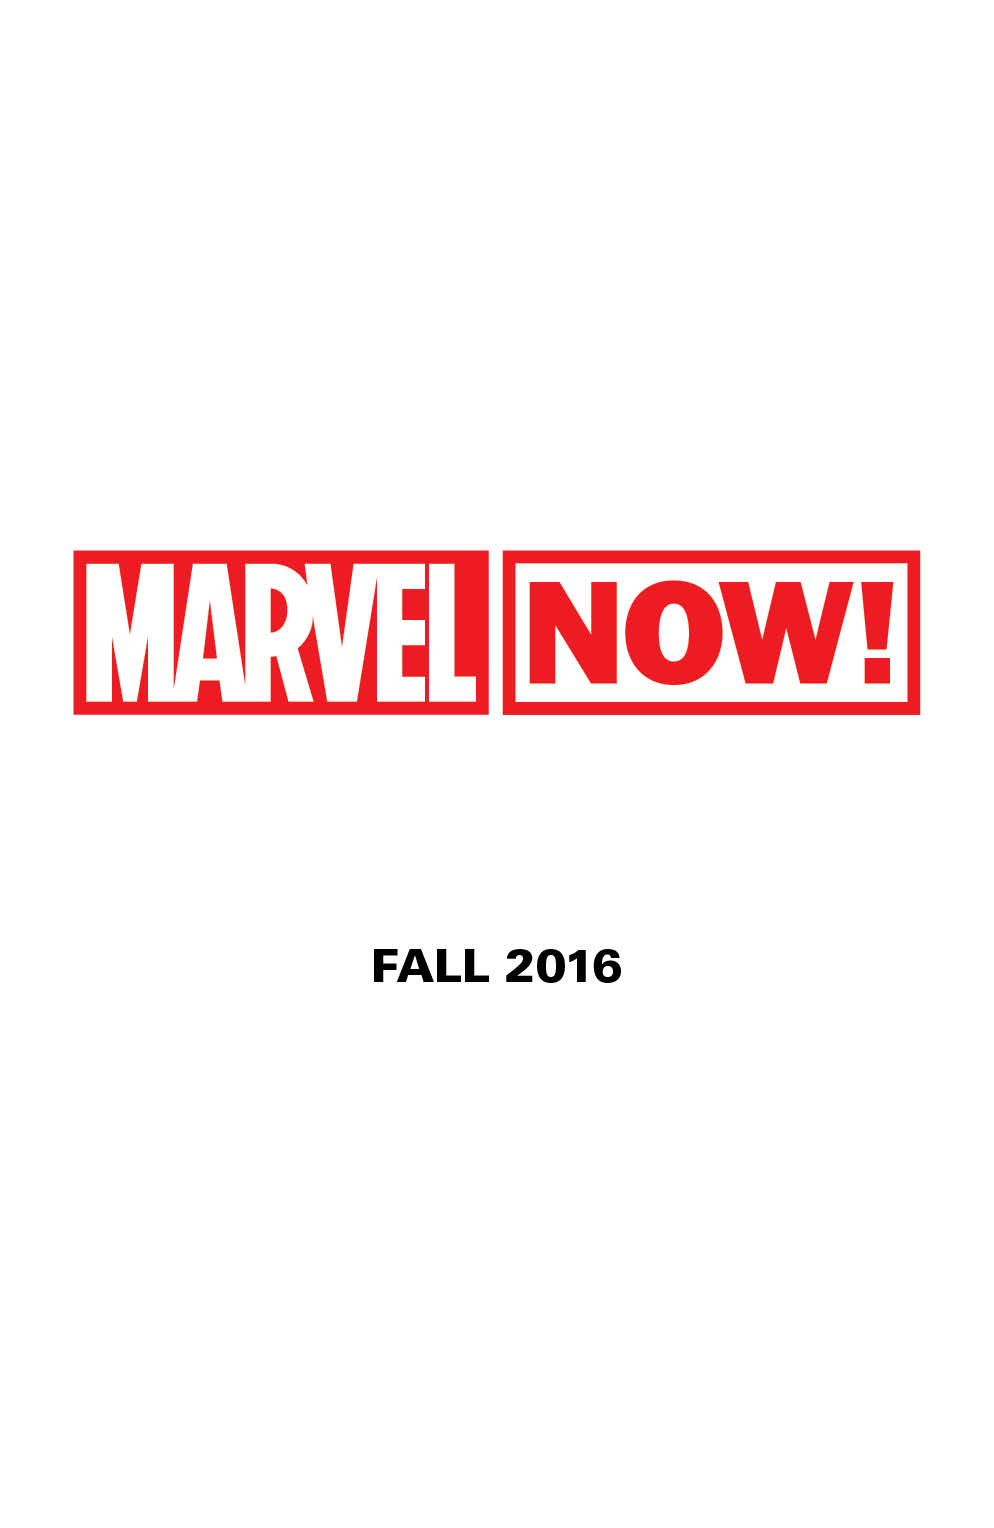 The Future is NOW! Get ready for MARVEL NOW!